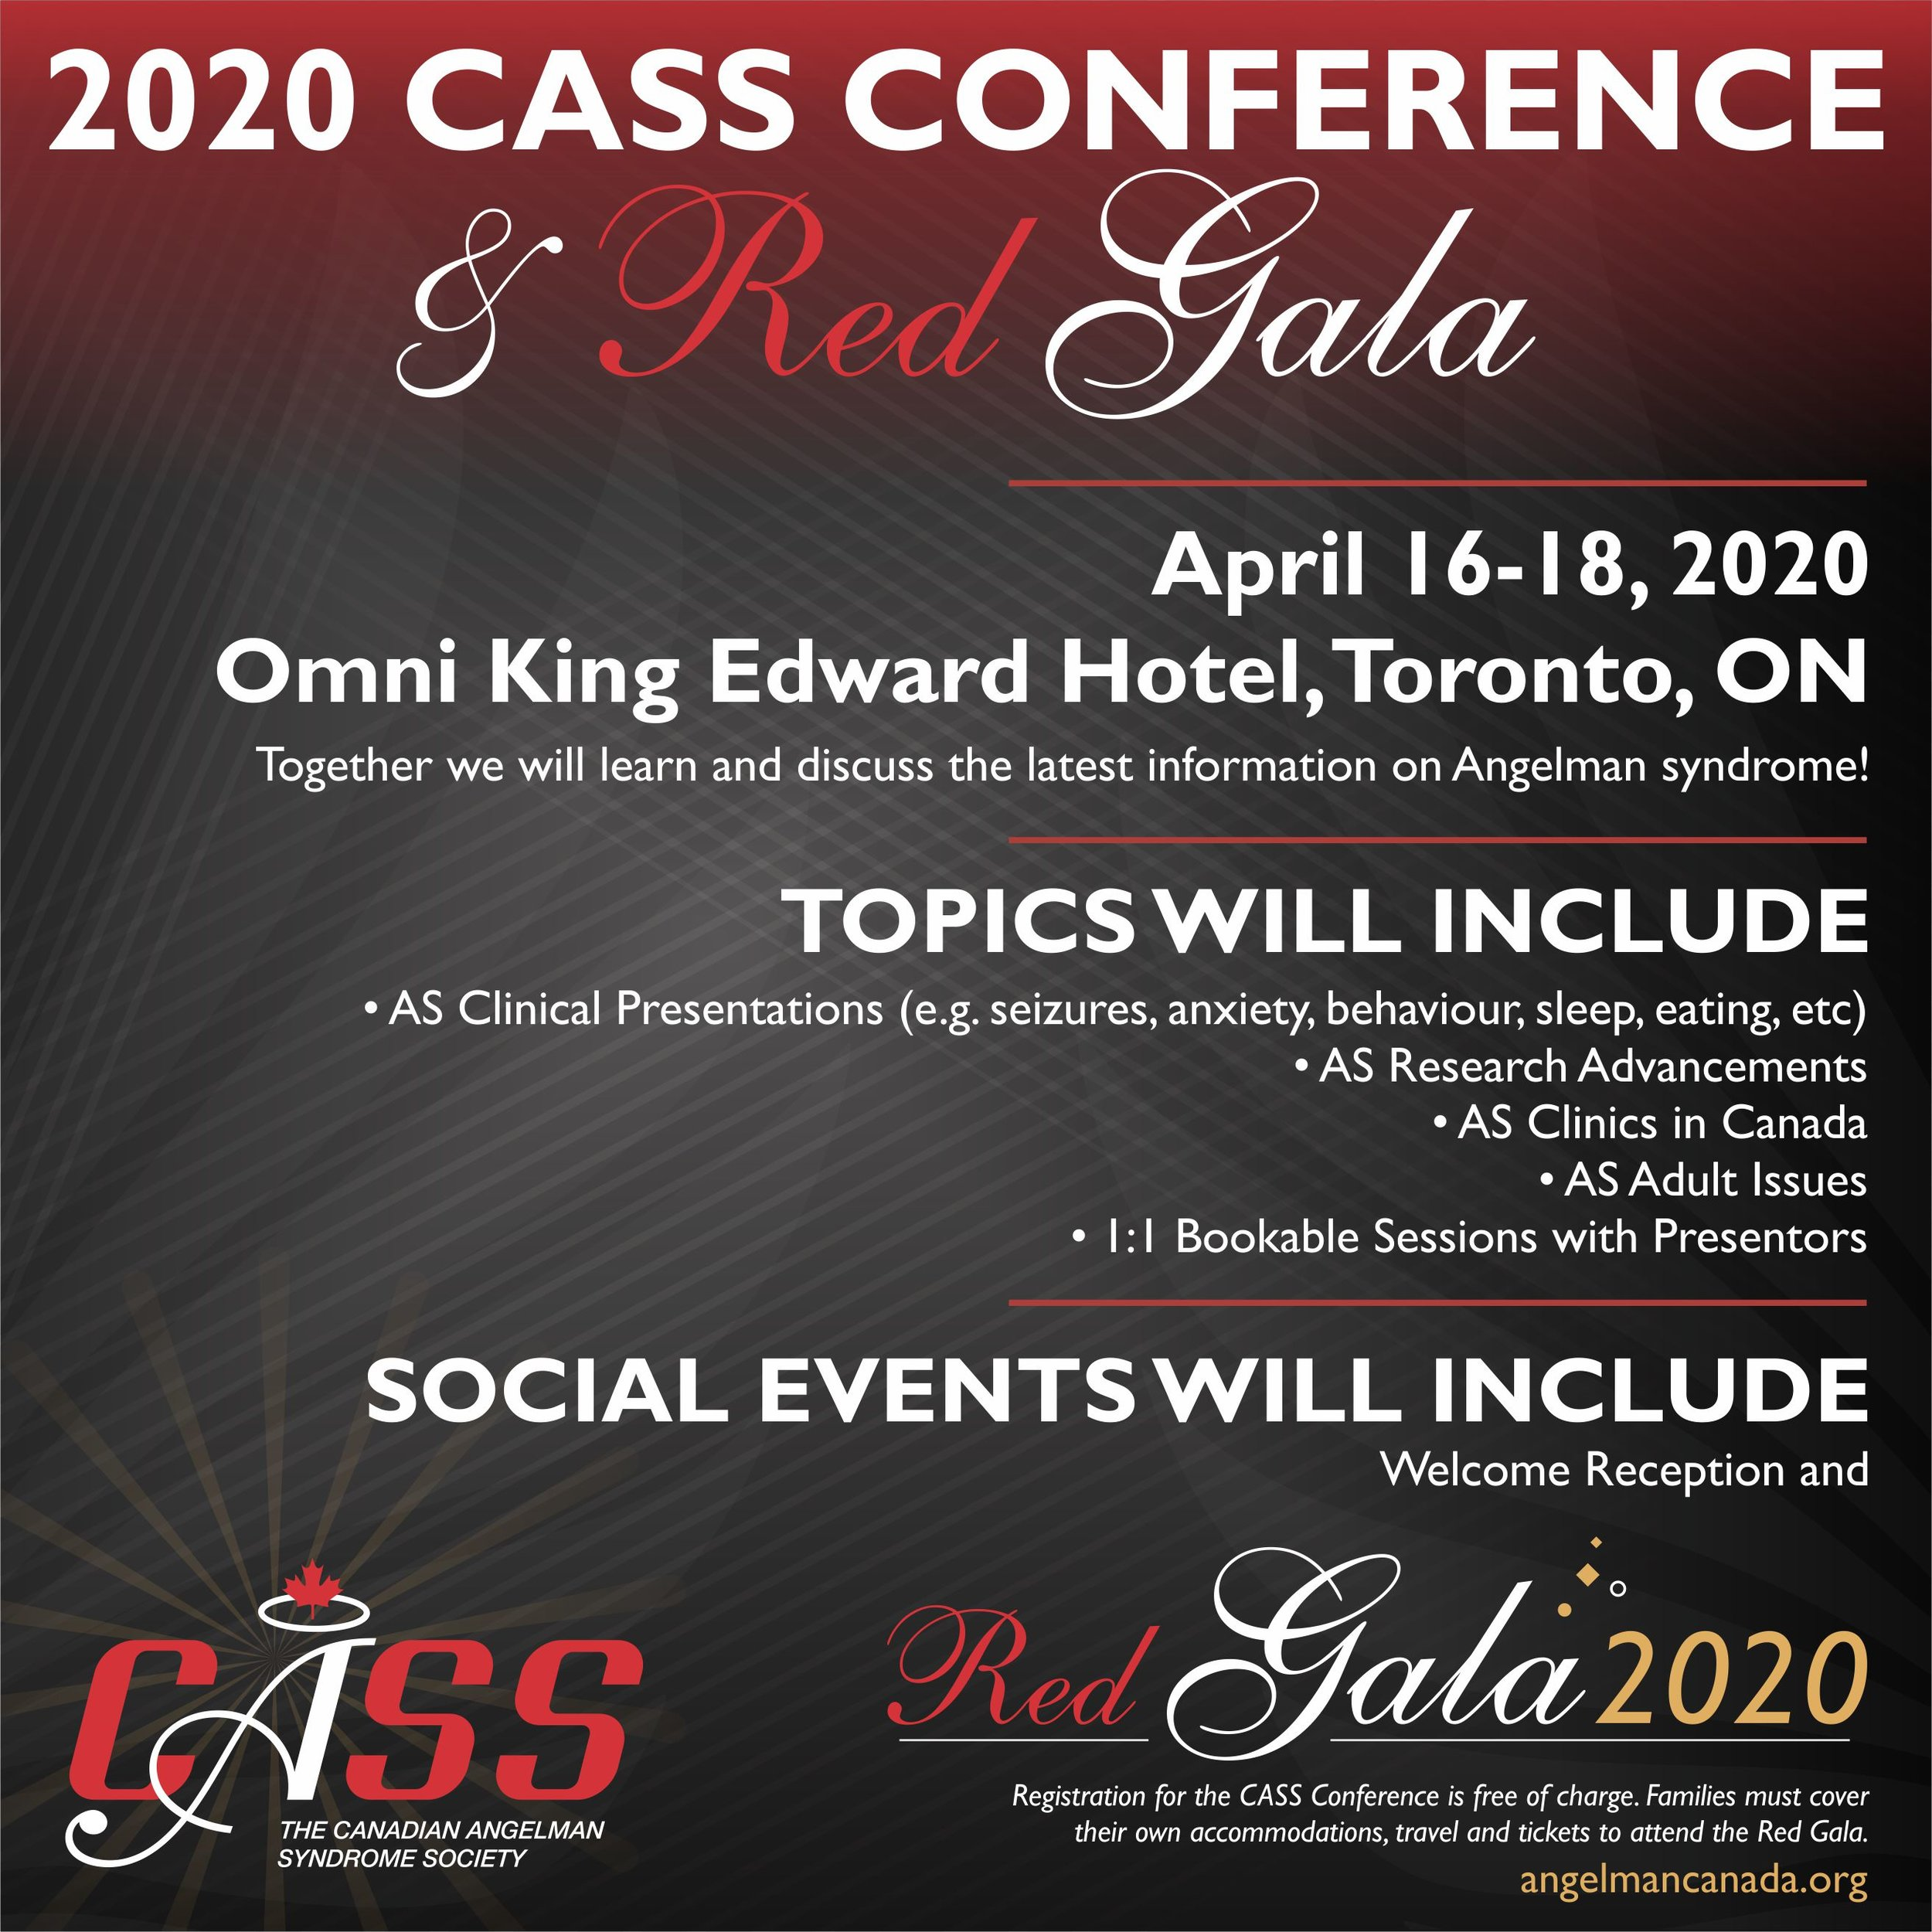 CASS Conference and Red Gala 2020 (2).jpg